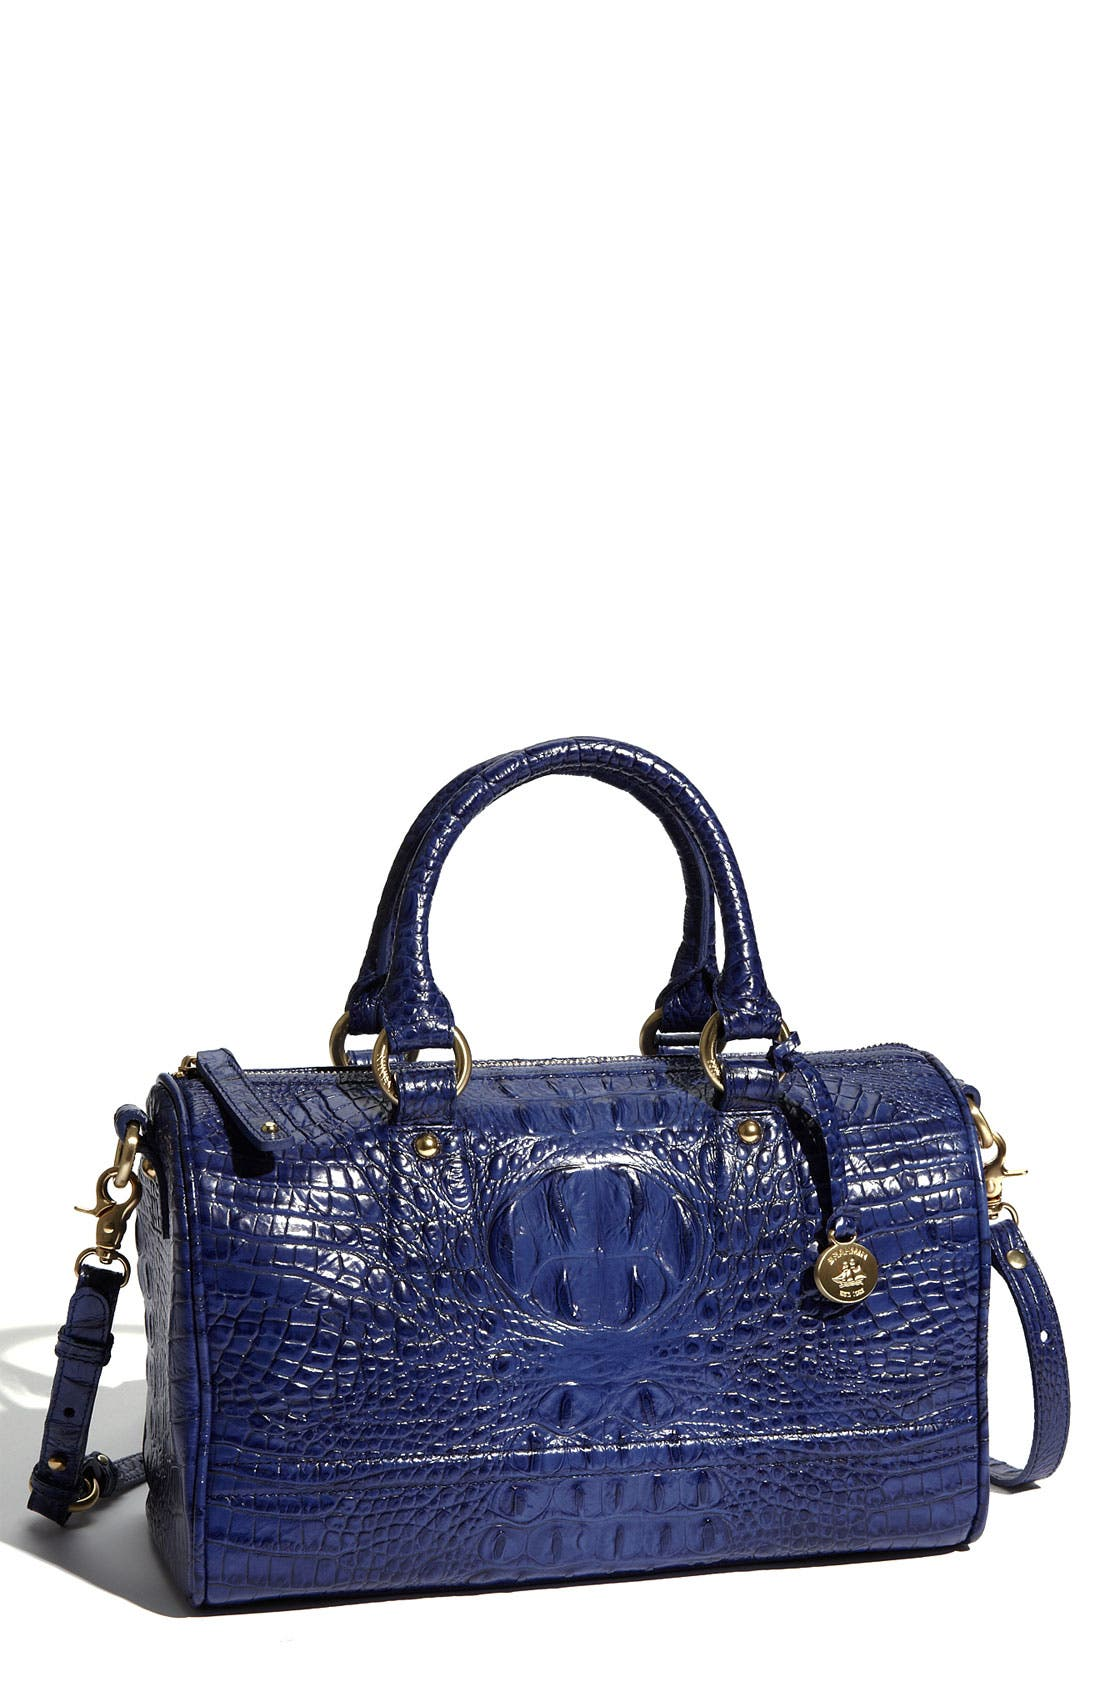 Alternate Image 1 Selected - Brahmin 'Sadie' Croc Embossed Leather Satchel